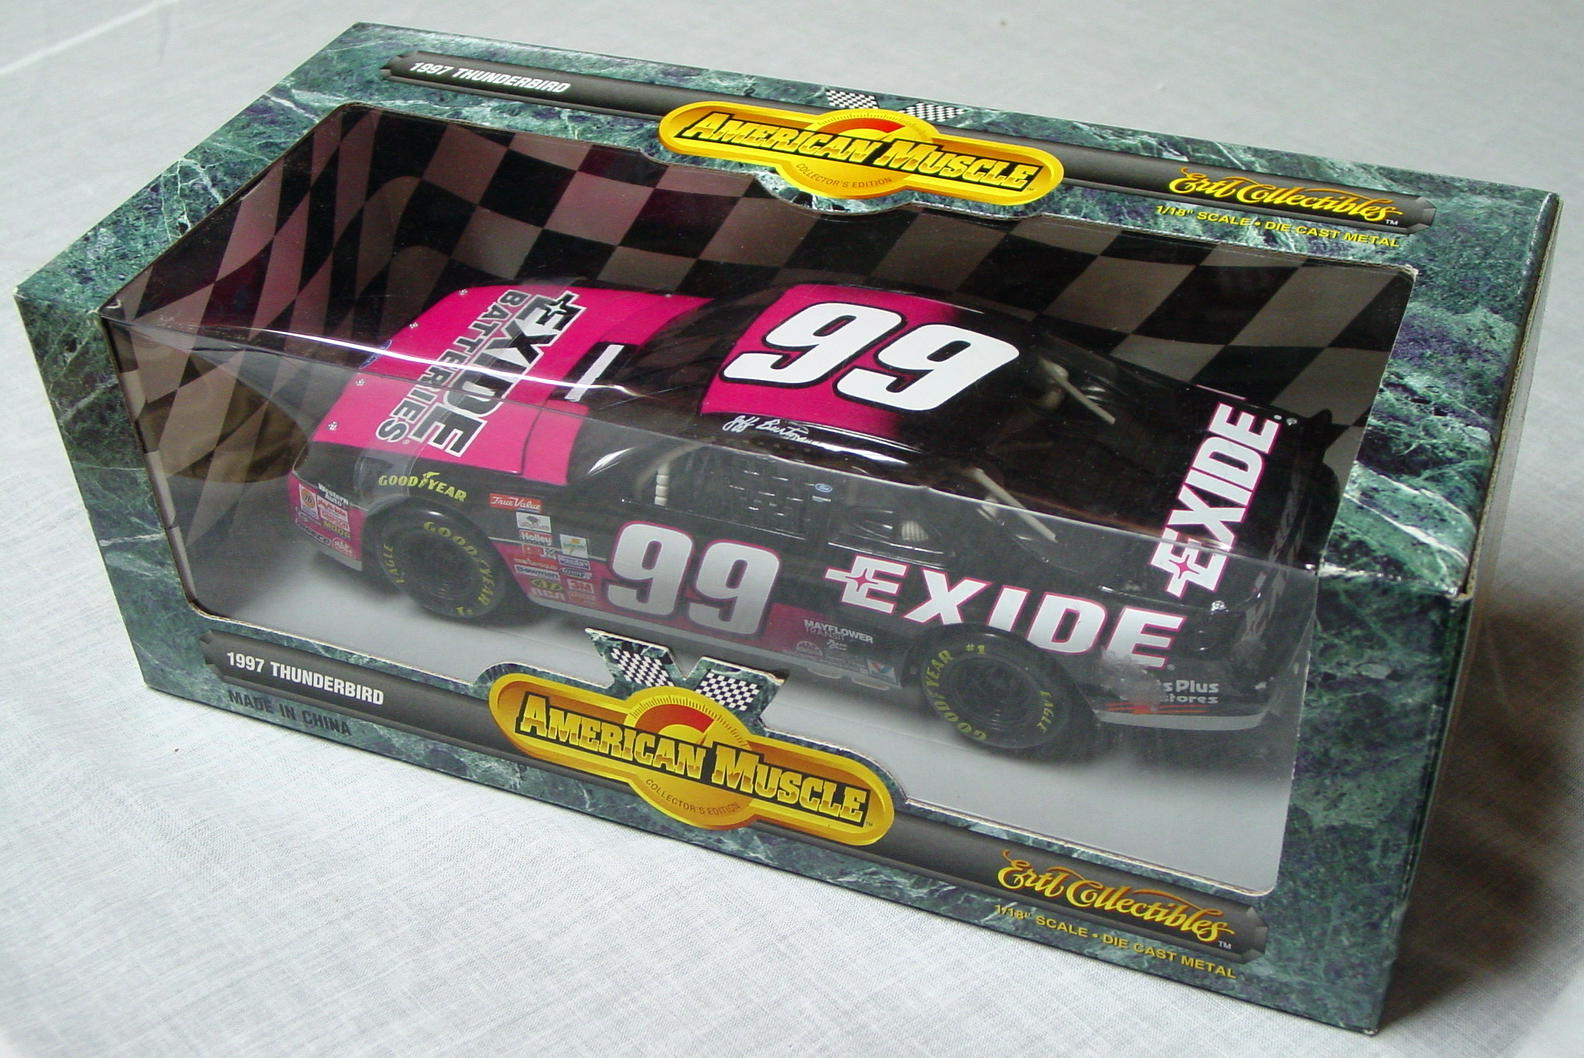 1_18 Scale - ERTL Jeff Burton 97 T-Bird black and pink